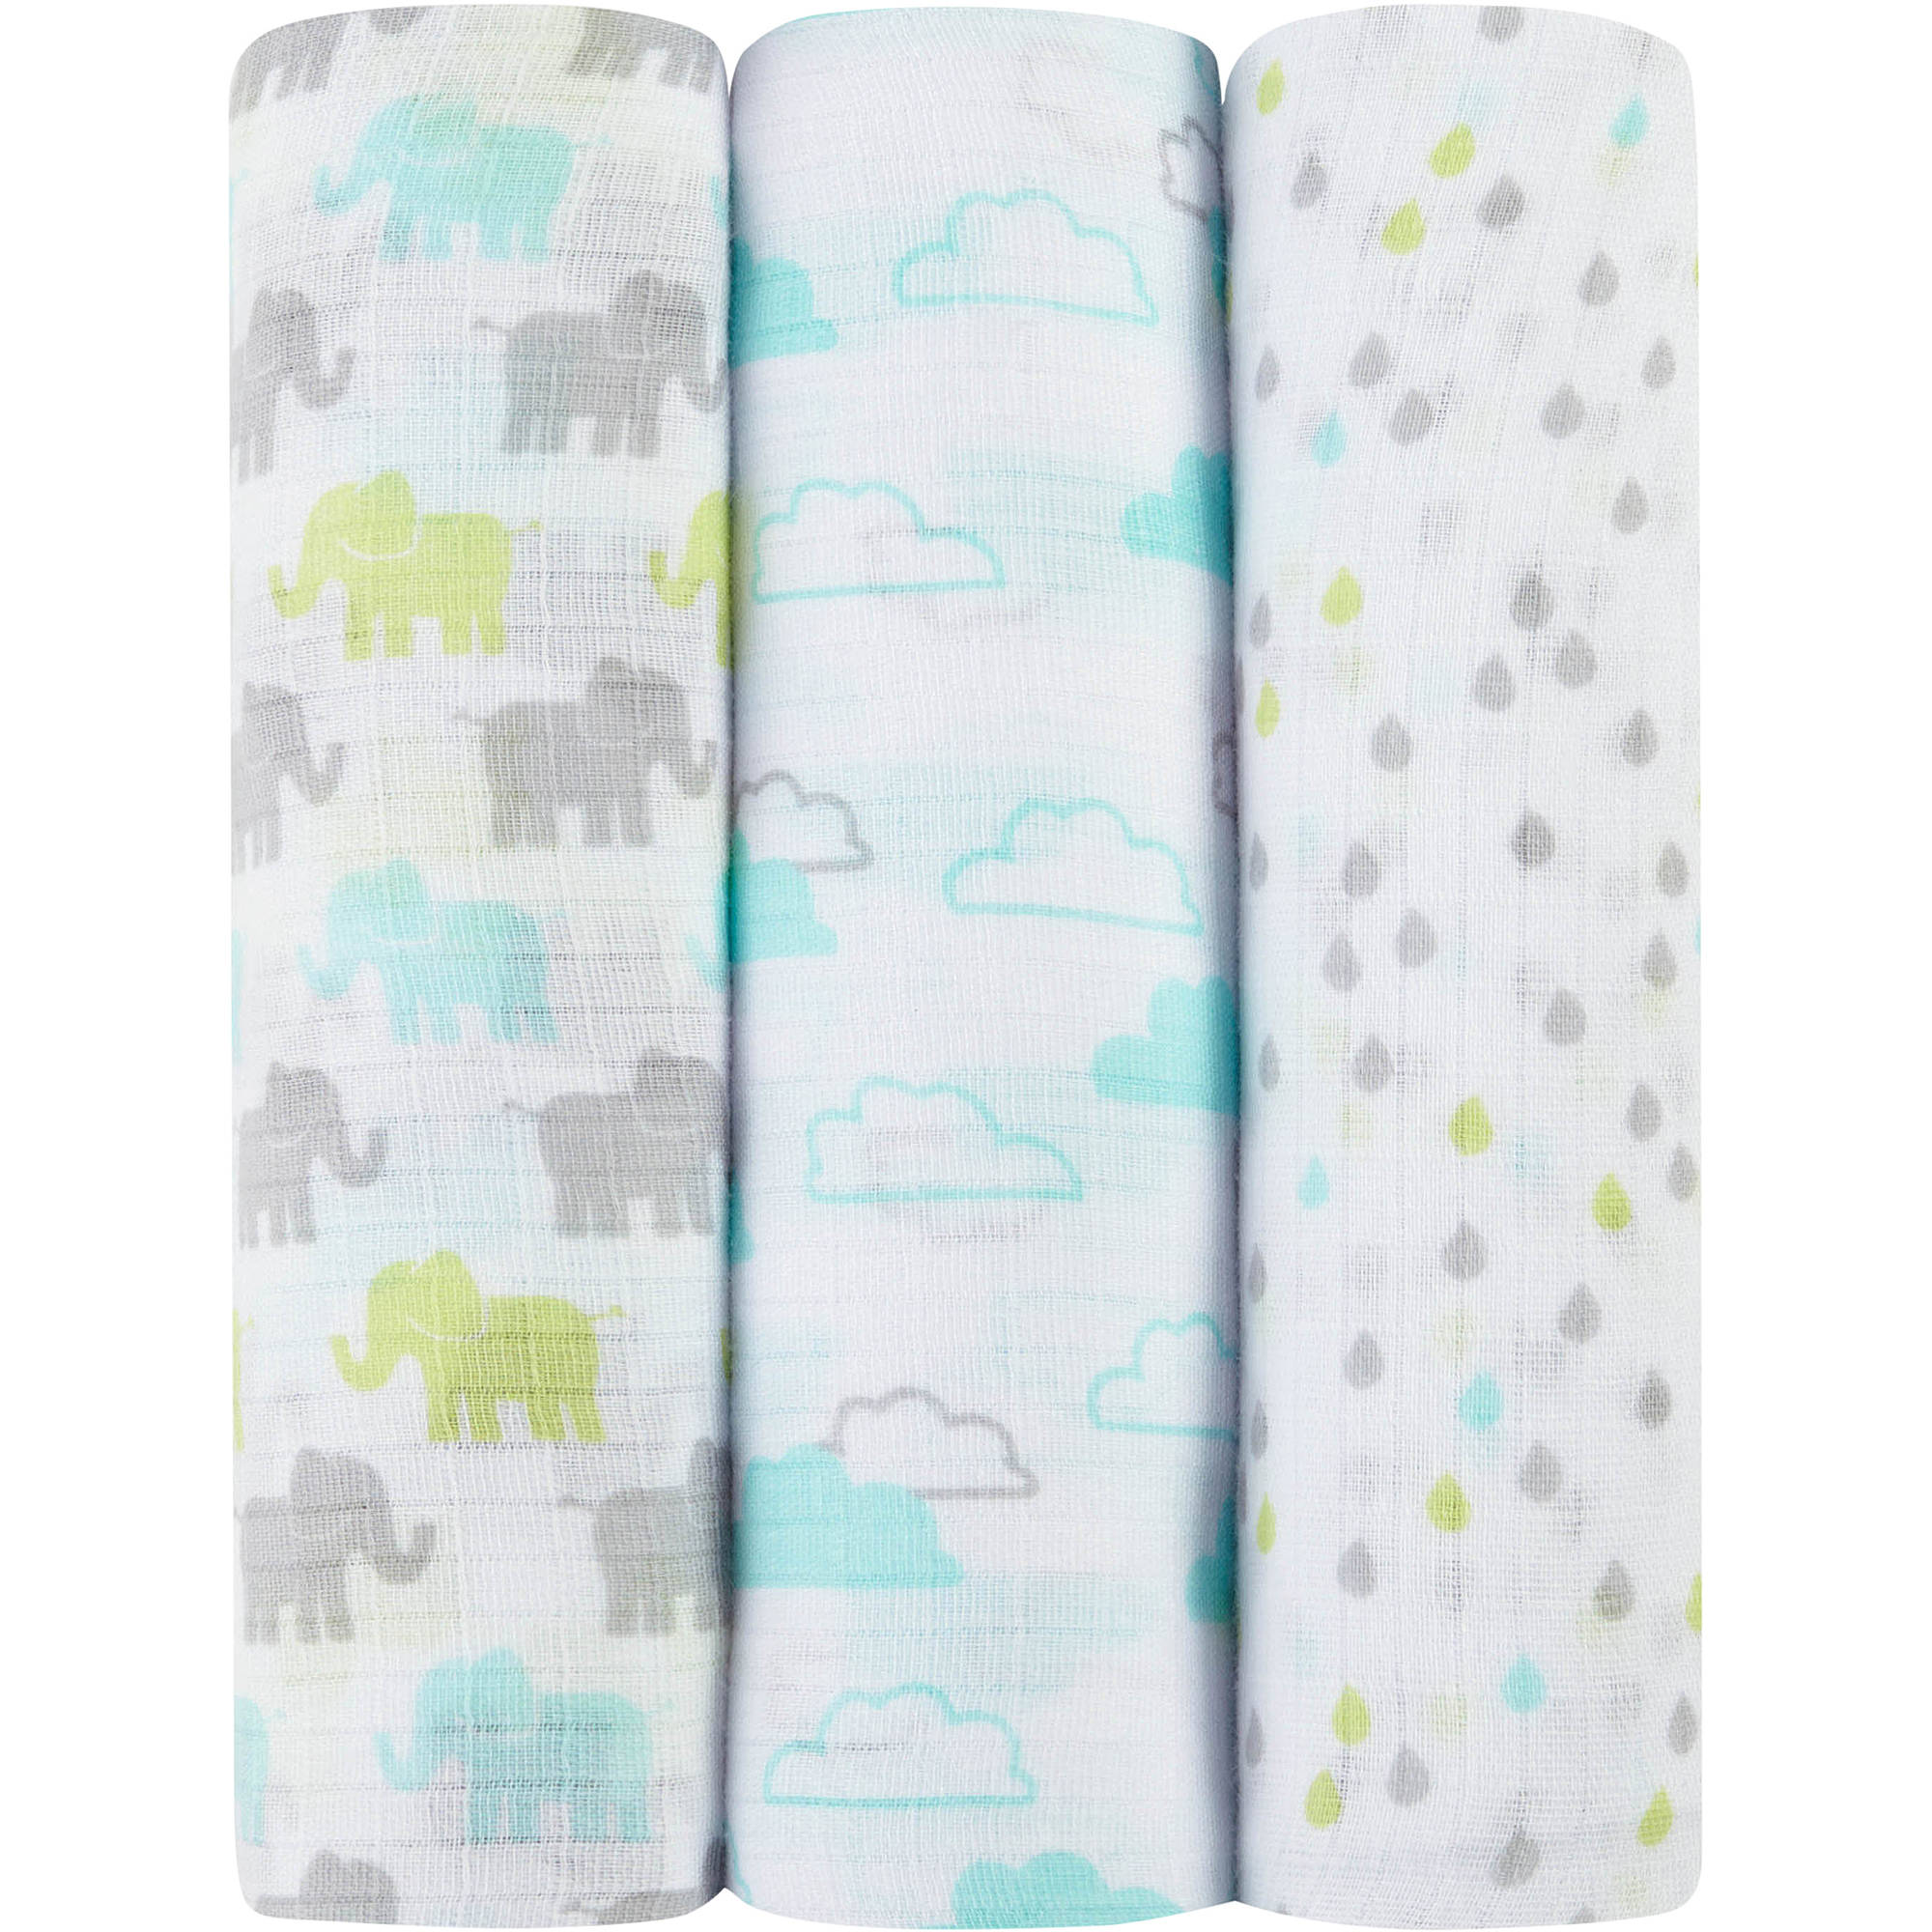 ideal baby by the makers of aden + anais Muslin Swaddles, 3pk, Tall Tale